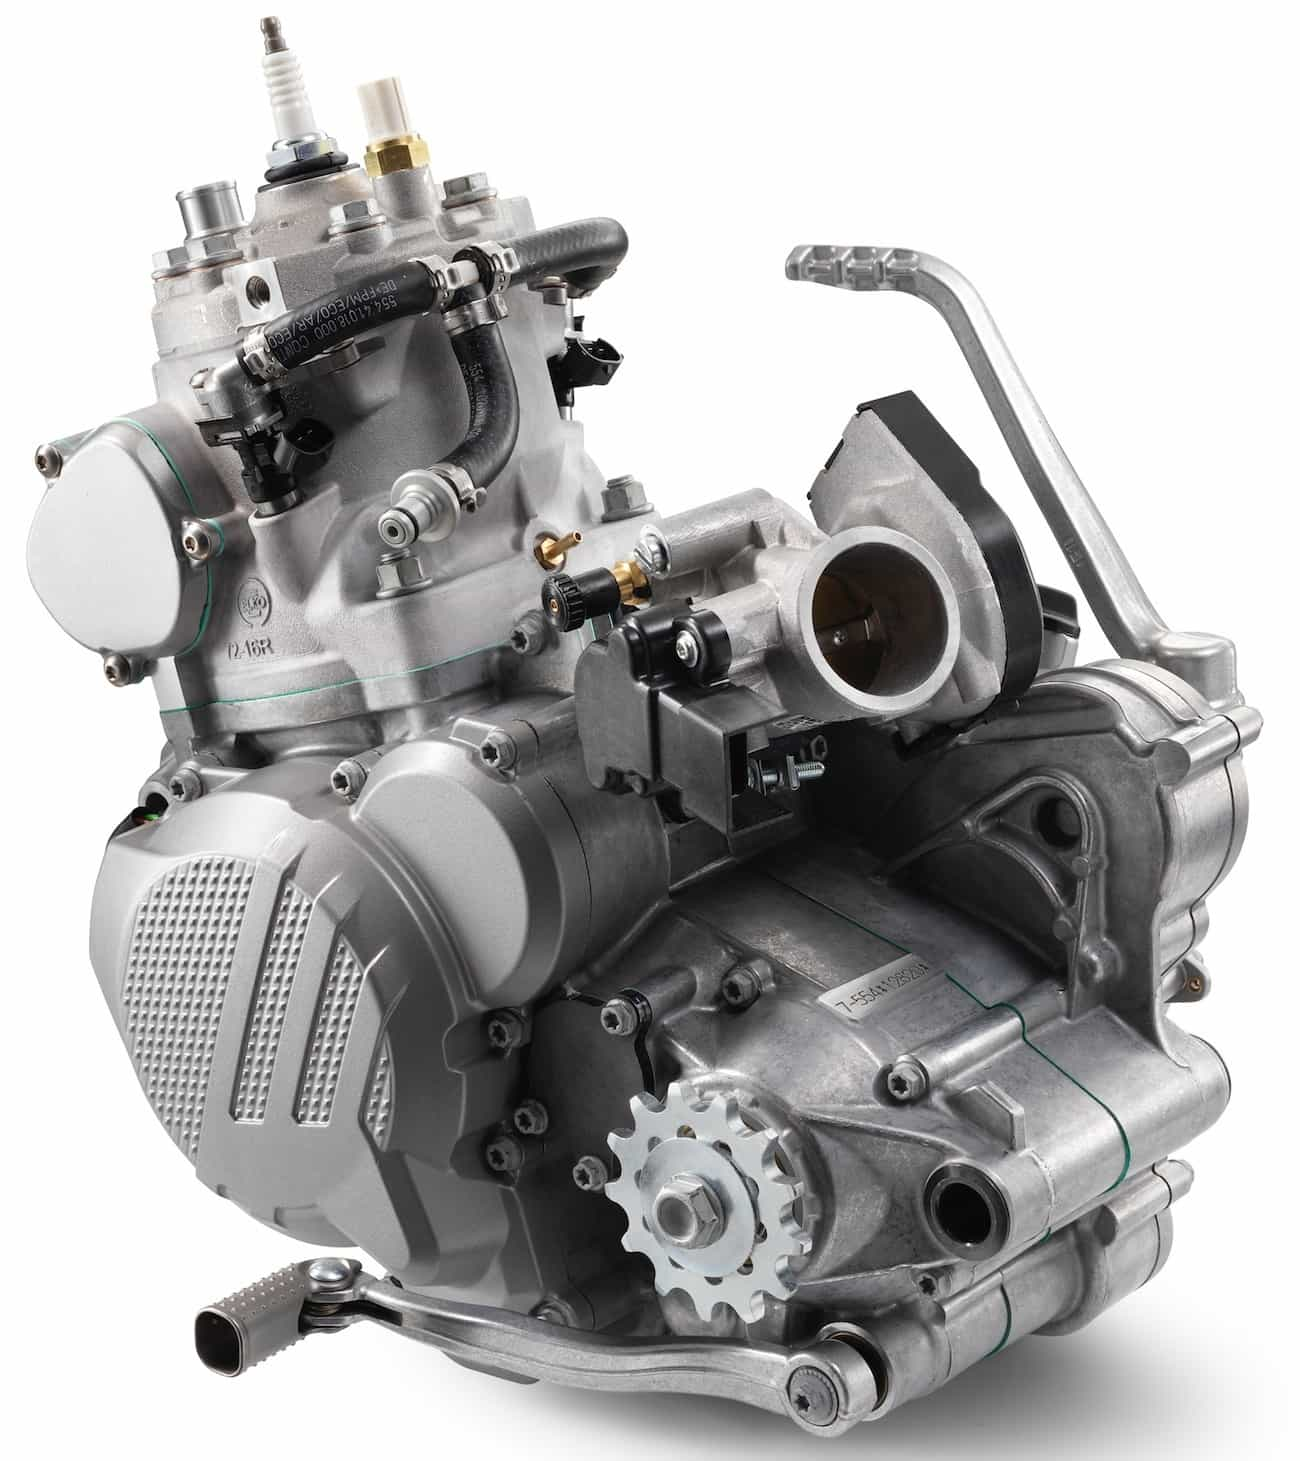 INSIDE LOOK AT THE 2018 KTM 250 FUEL-INJECTED TWO-STROKE